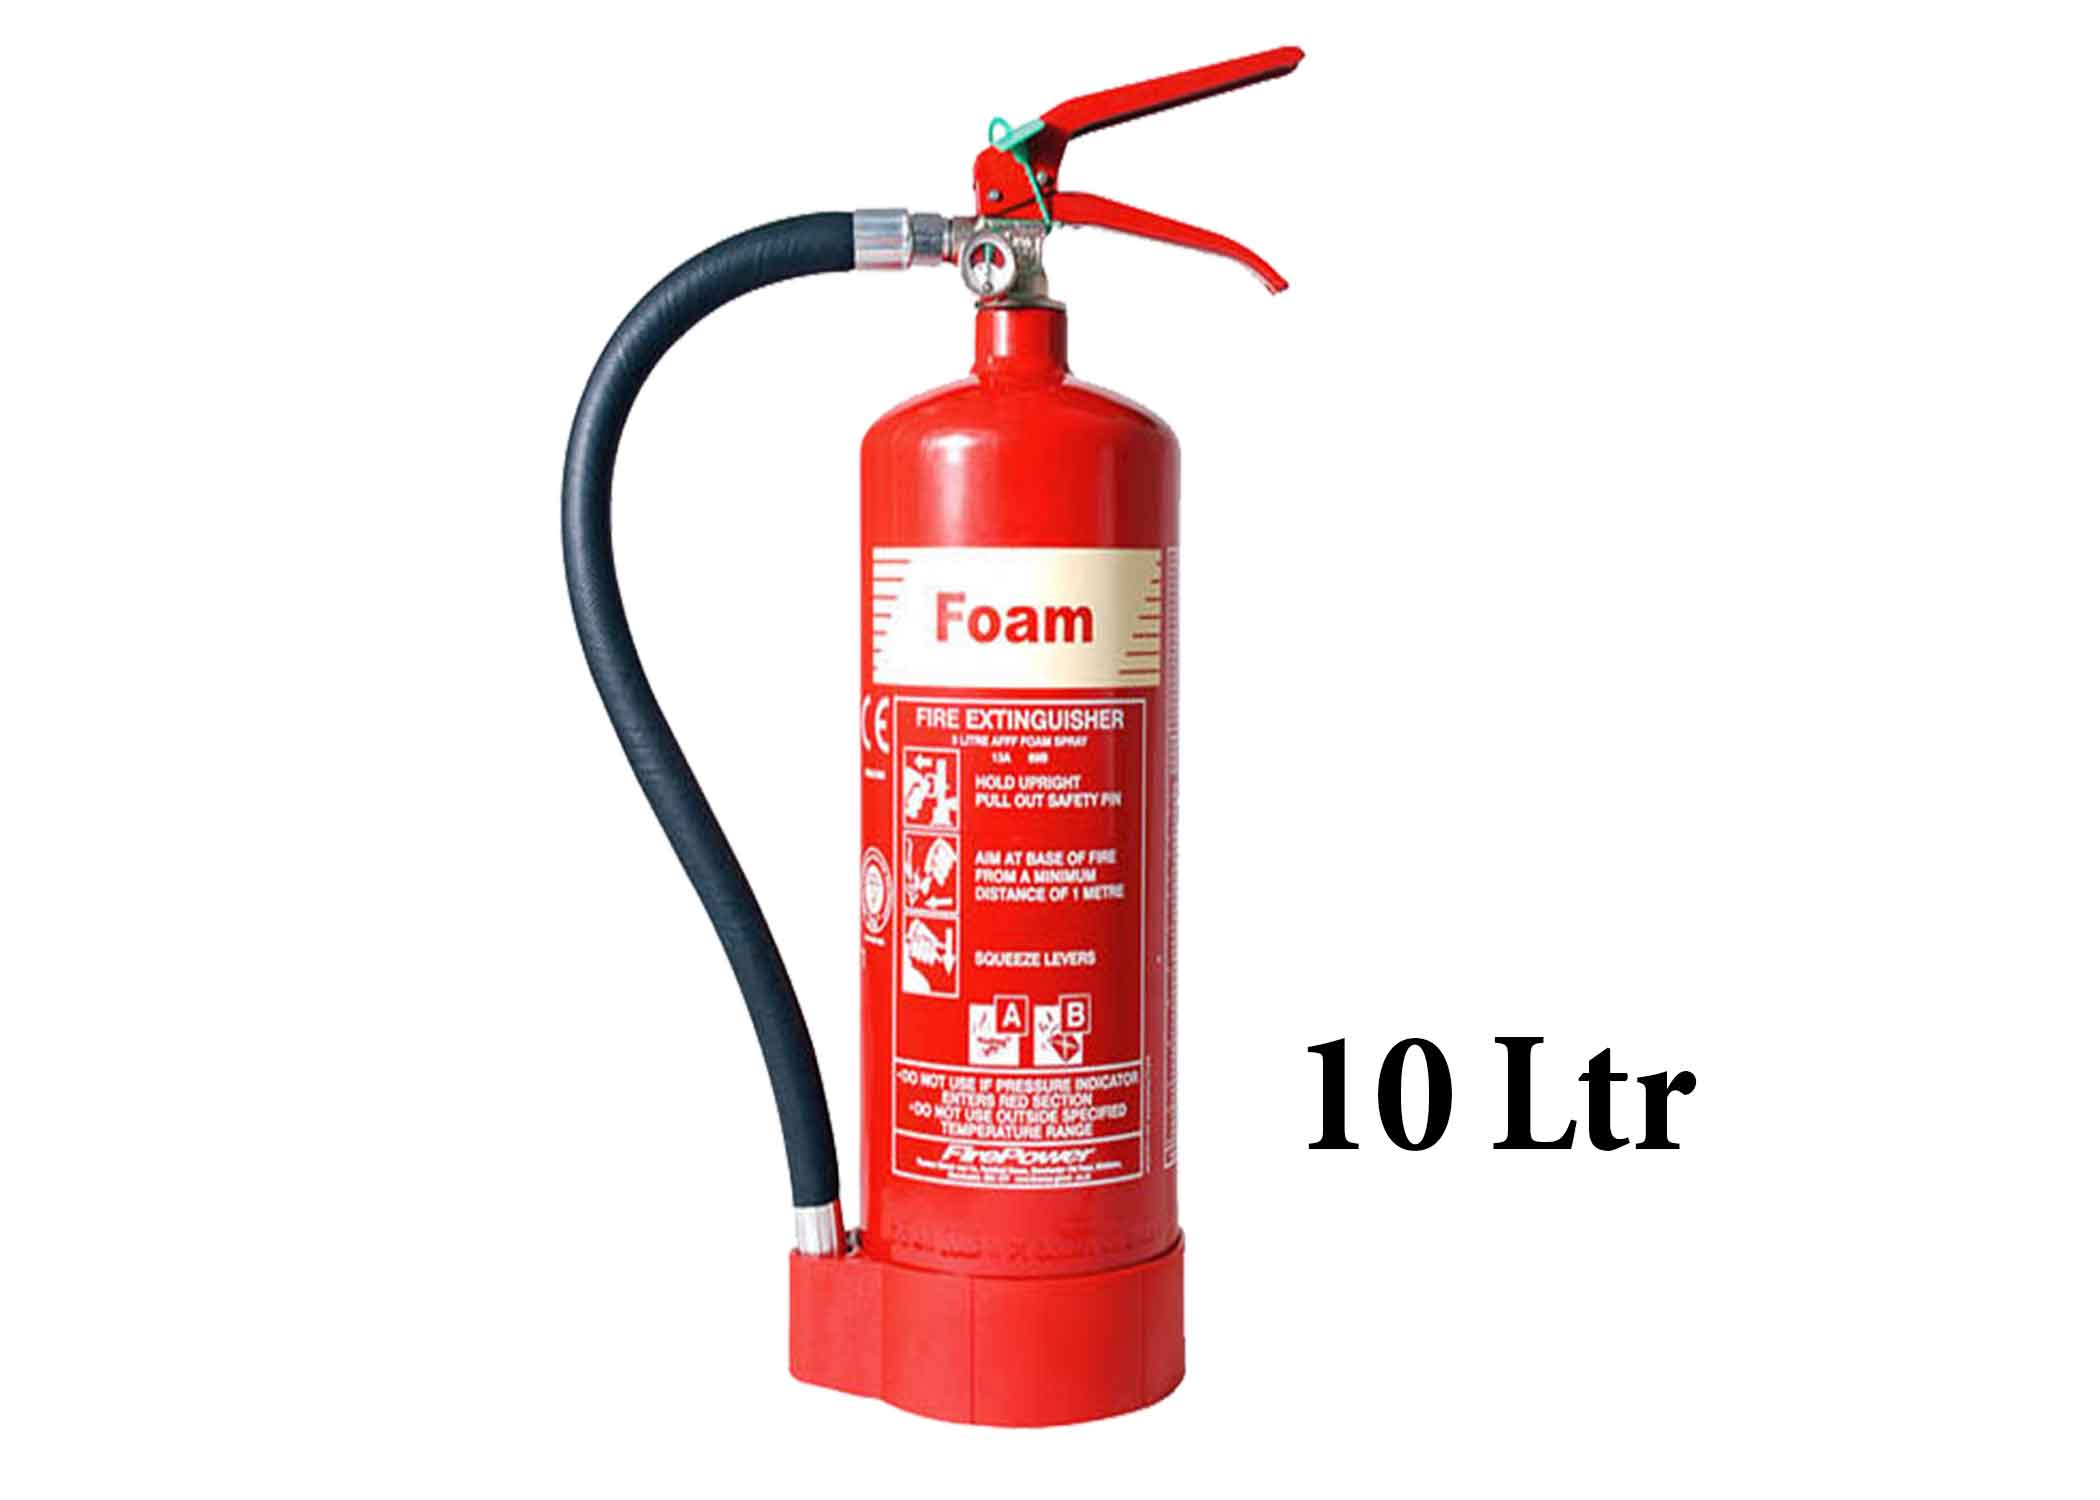 10 Ltr Foam Fire Extinguisher